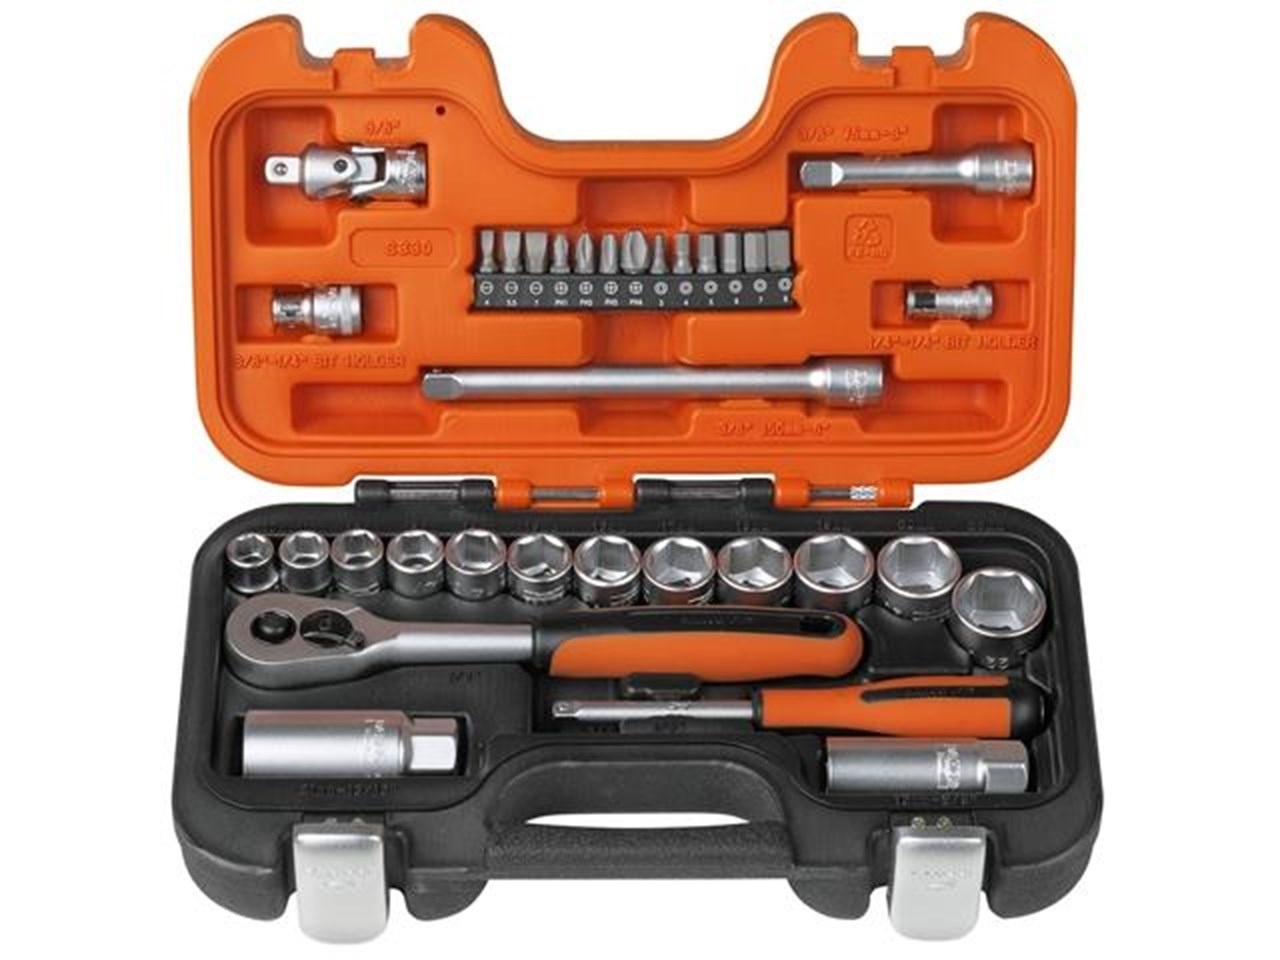 "BAHCO - 34 PIECE 3/8"" SOCKET SET WITH 1/4"" BITS - XMS1938SS"